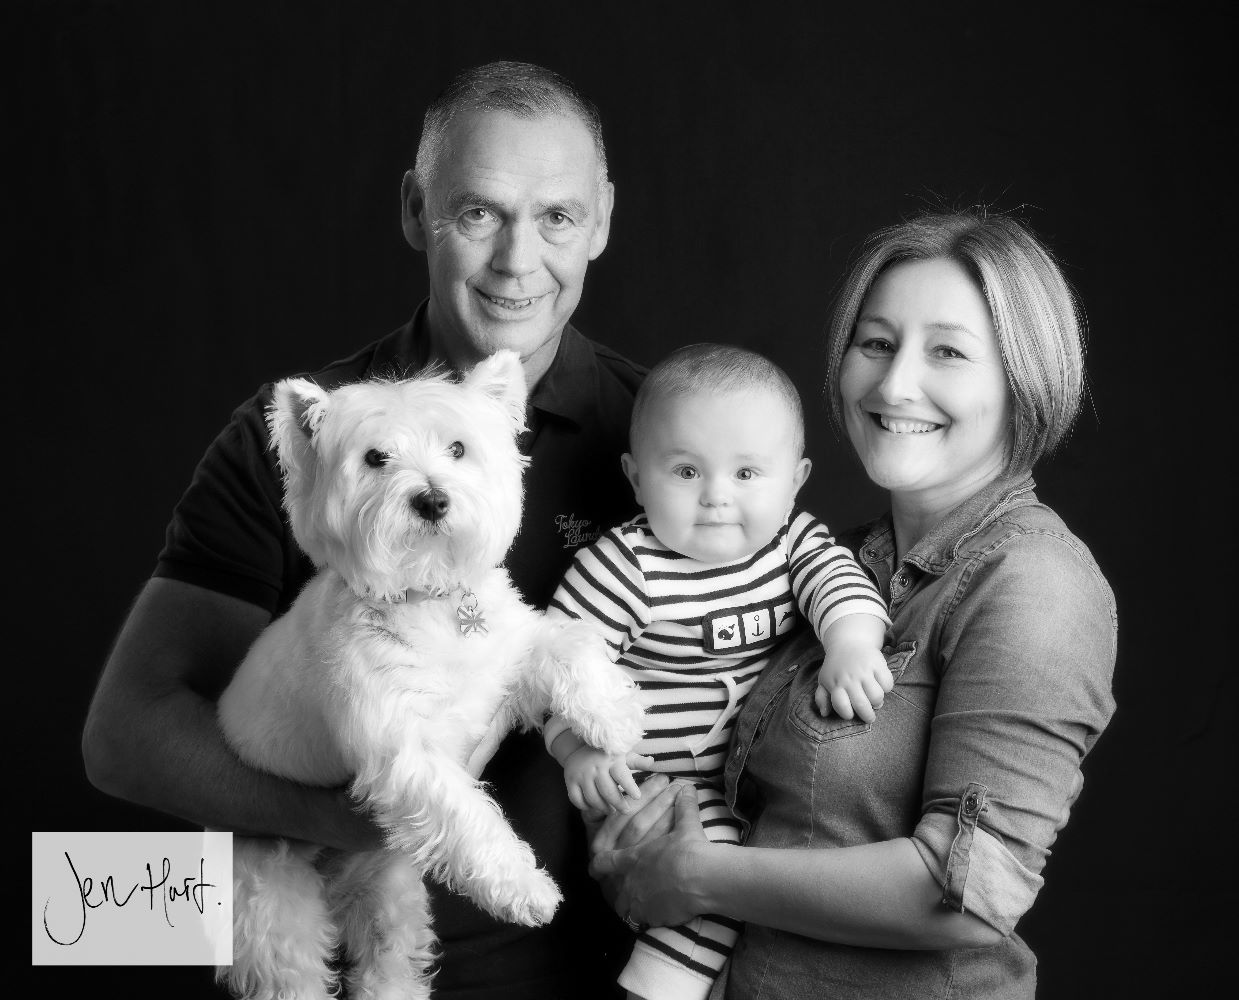 Baby-Family-Photography-Teddy- 15September17_008